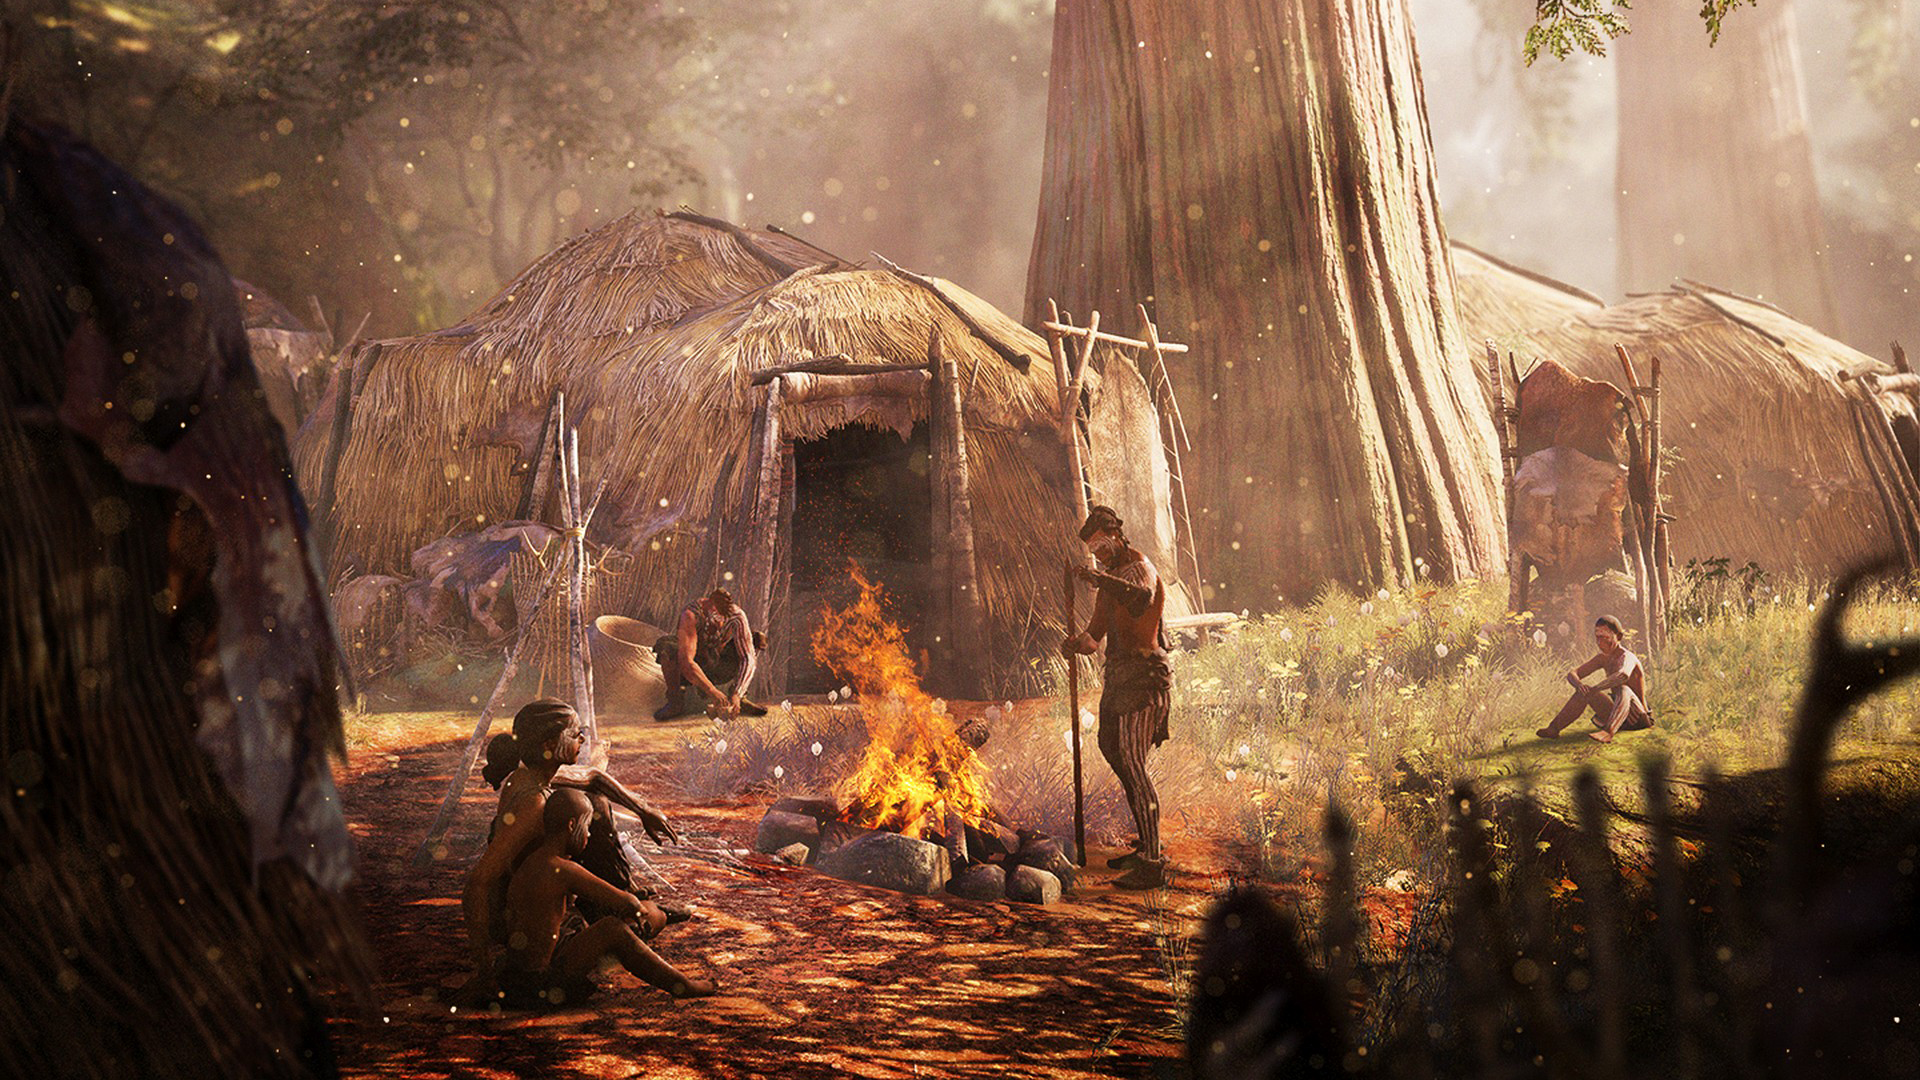 Far Cry Primal Artwork Video Games Wallpapers Hd: Far Cry Primal Backgrounds, Pictures, Images